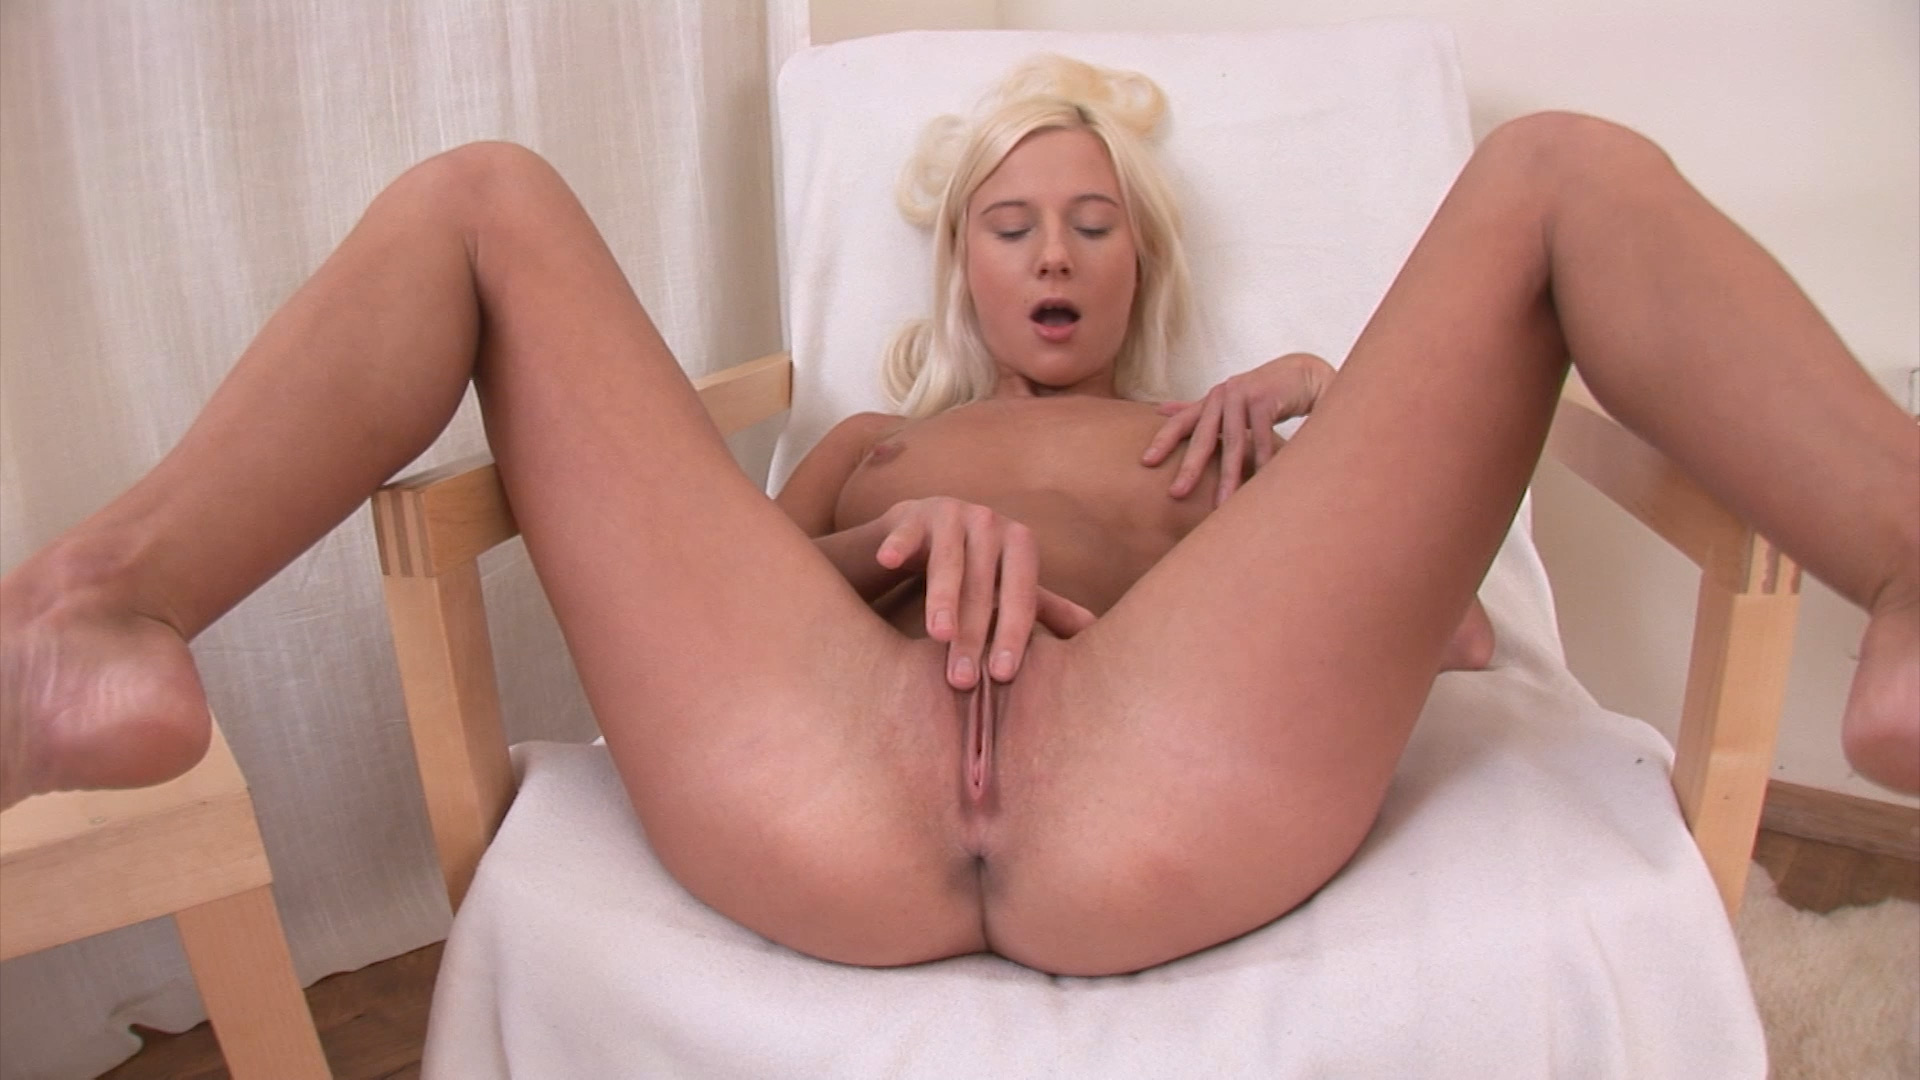 Horny Blonde Fucks Herself With Big Black Dildo